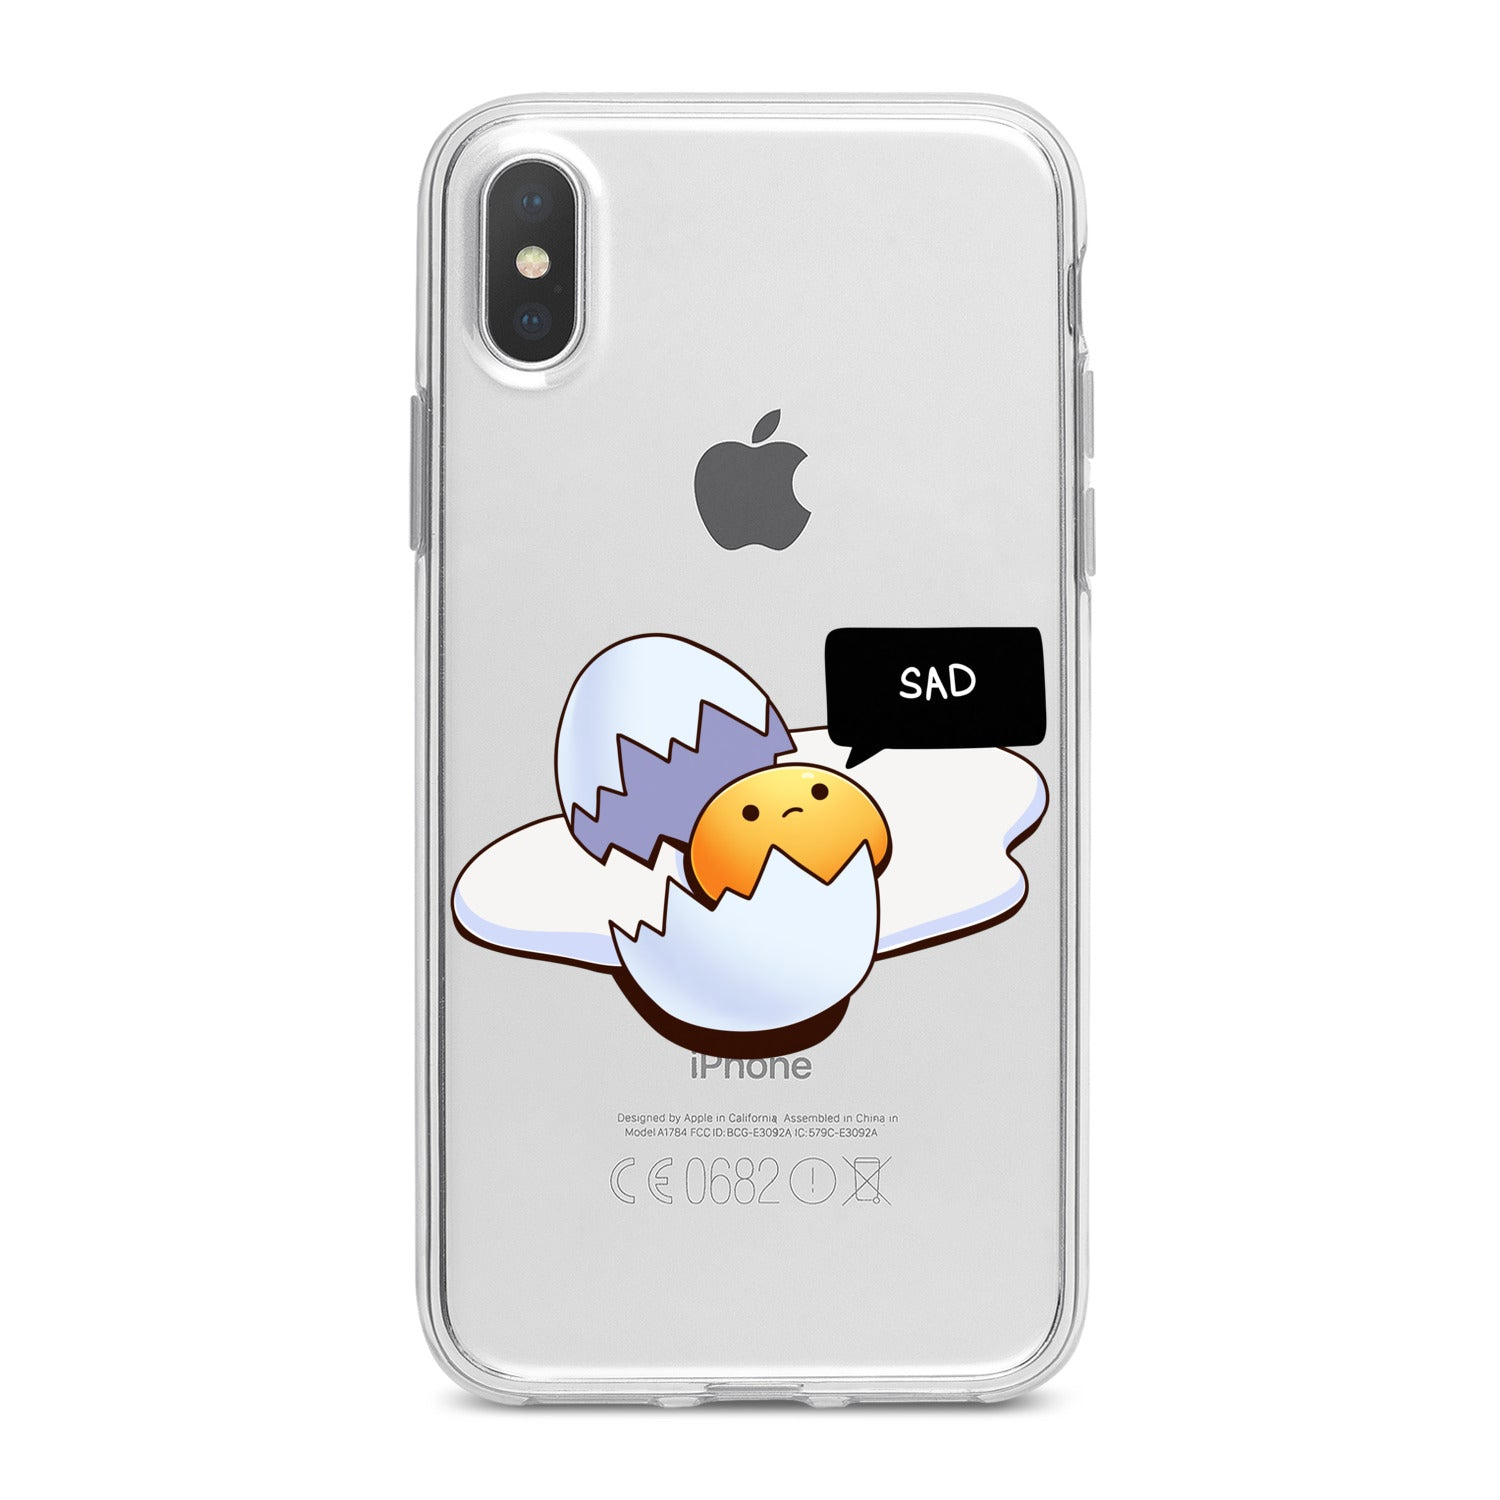 Lex Altern Broken Egg Phone Case for your iPhone & Android phone.